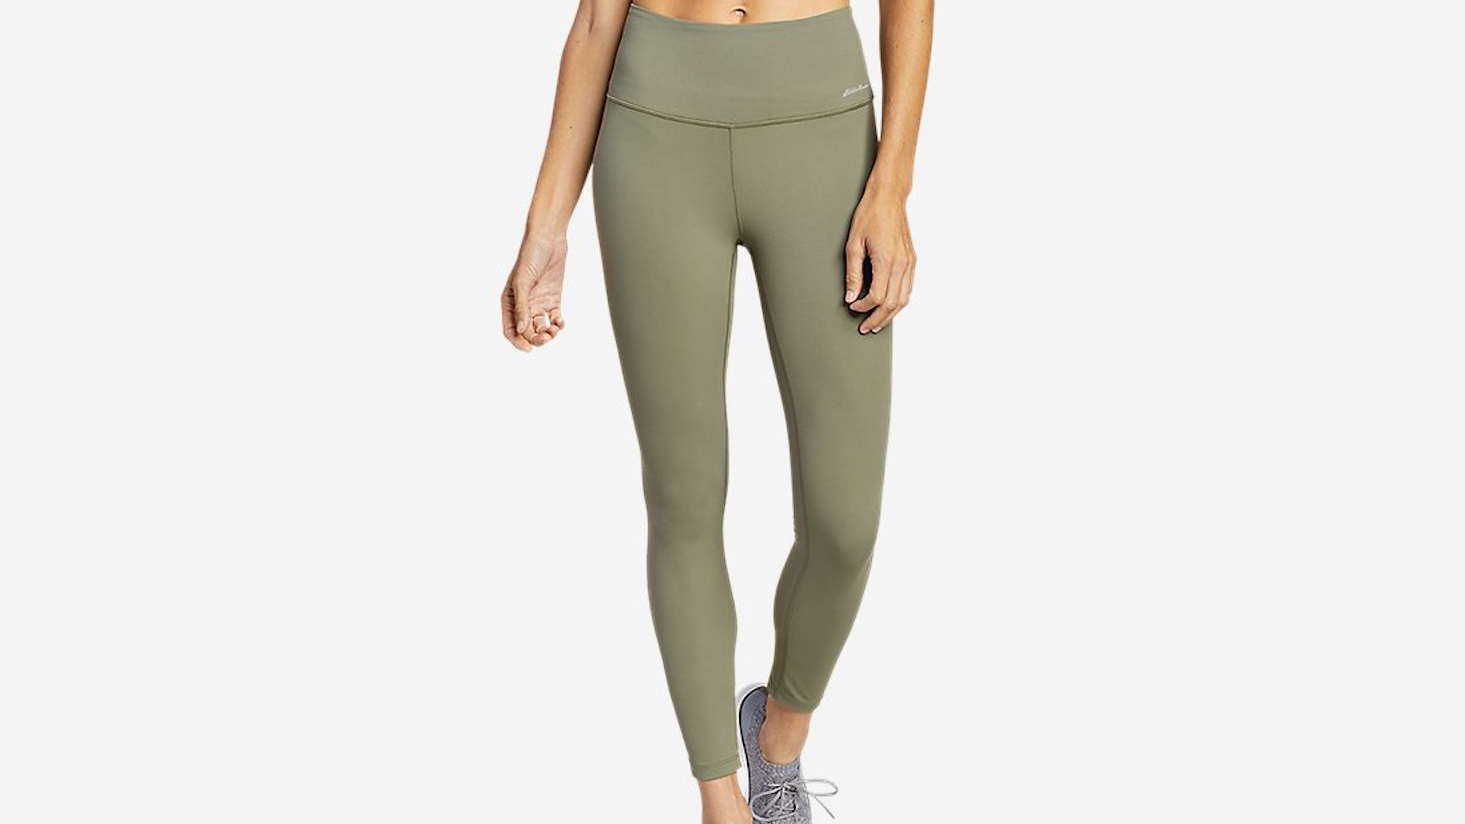 These New Eddie Bauer Leggings Feature UPF 50+ Protection